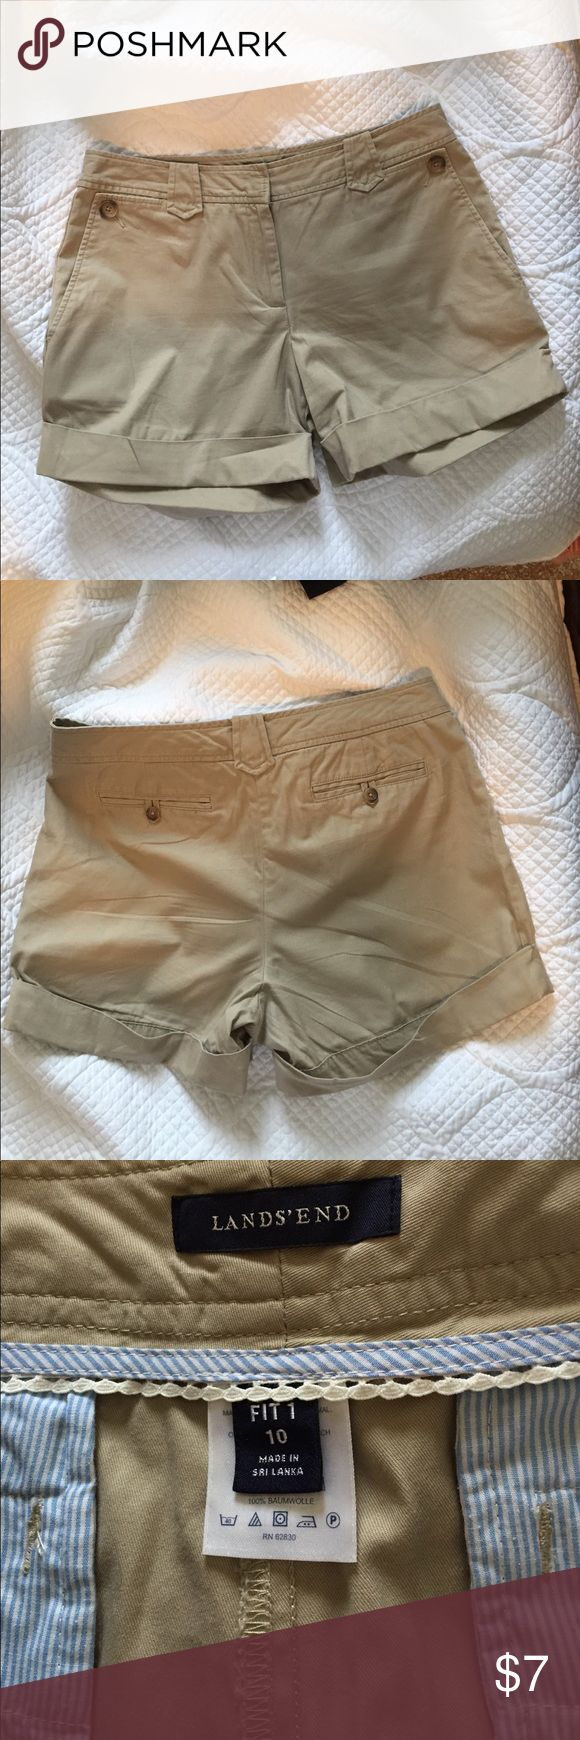 """🎯 Lands End khaki shorts EUC Khaki cuffed shorts. Size 10 measures 17"""" at waist and 14"""" from waist to bottom. Lands' End Shorts"""